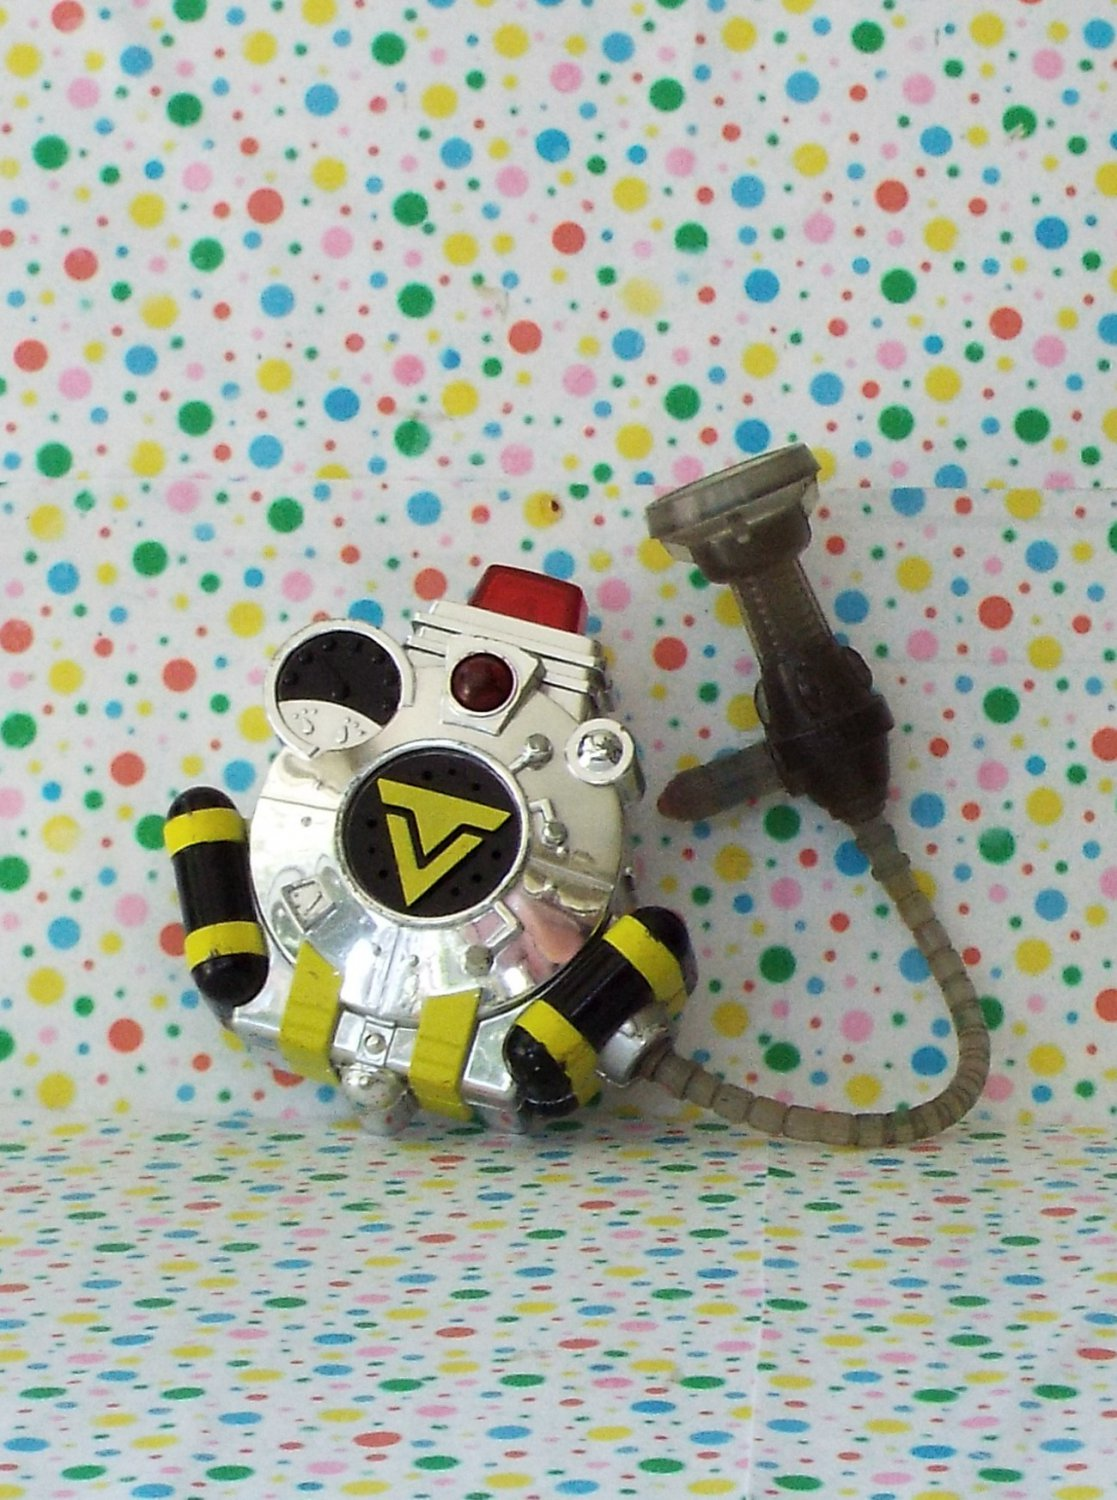 Fisher Price Rescue Heroes Voice Tech FDNY Billy Blazes Backpack Part